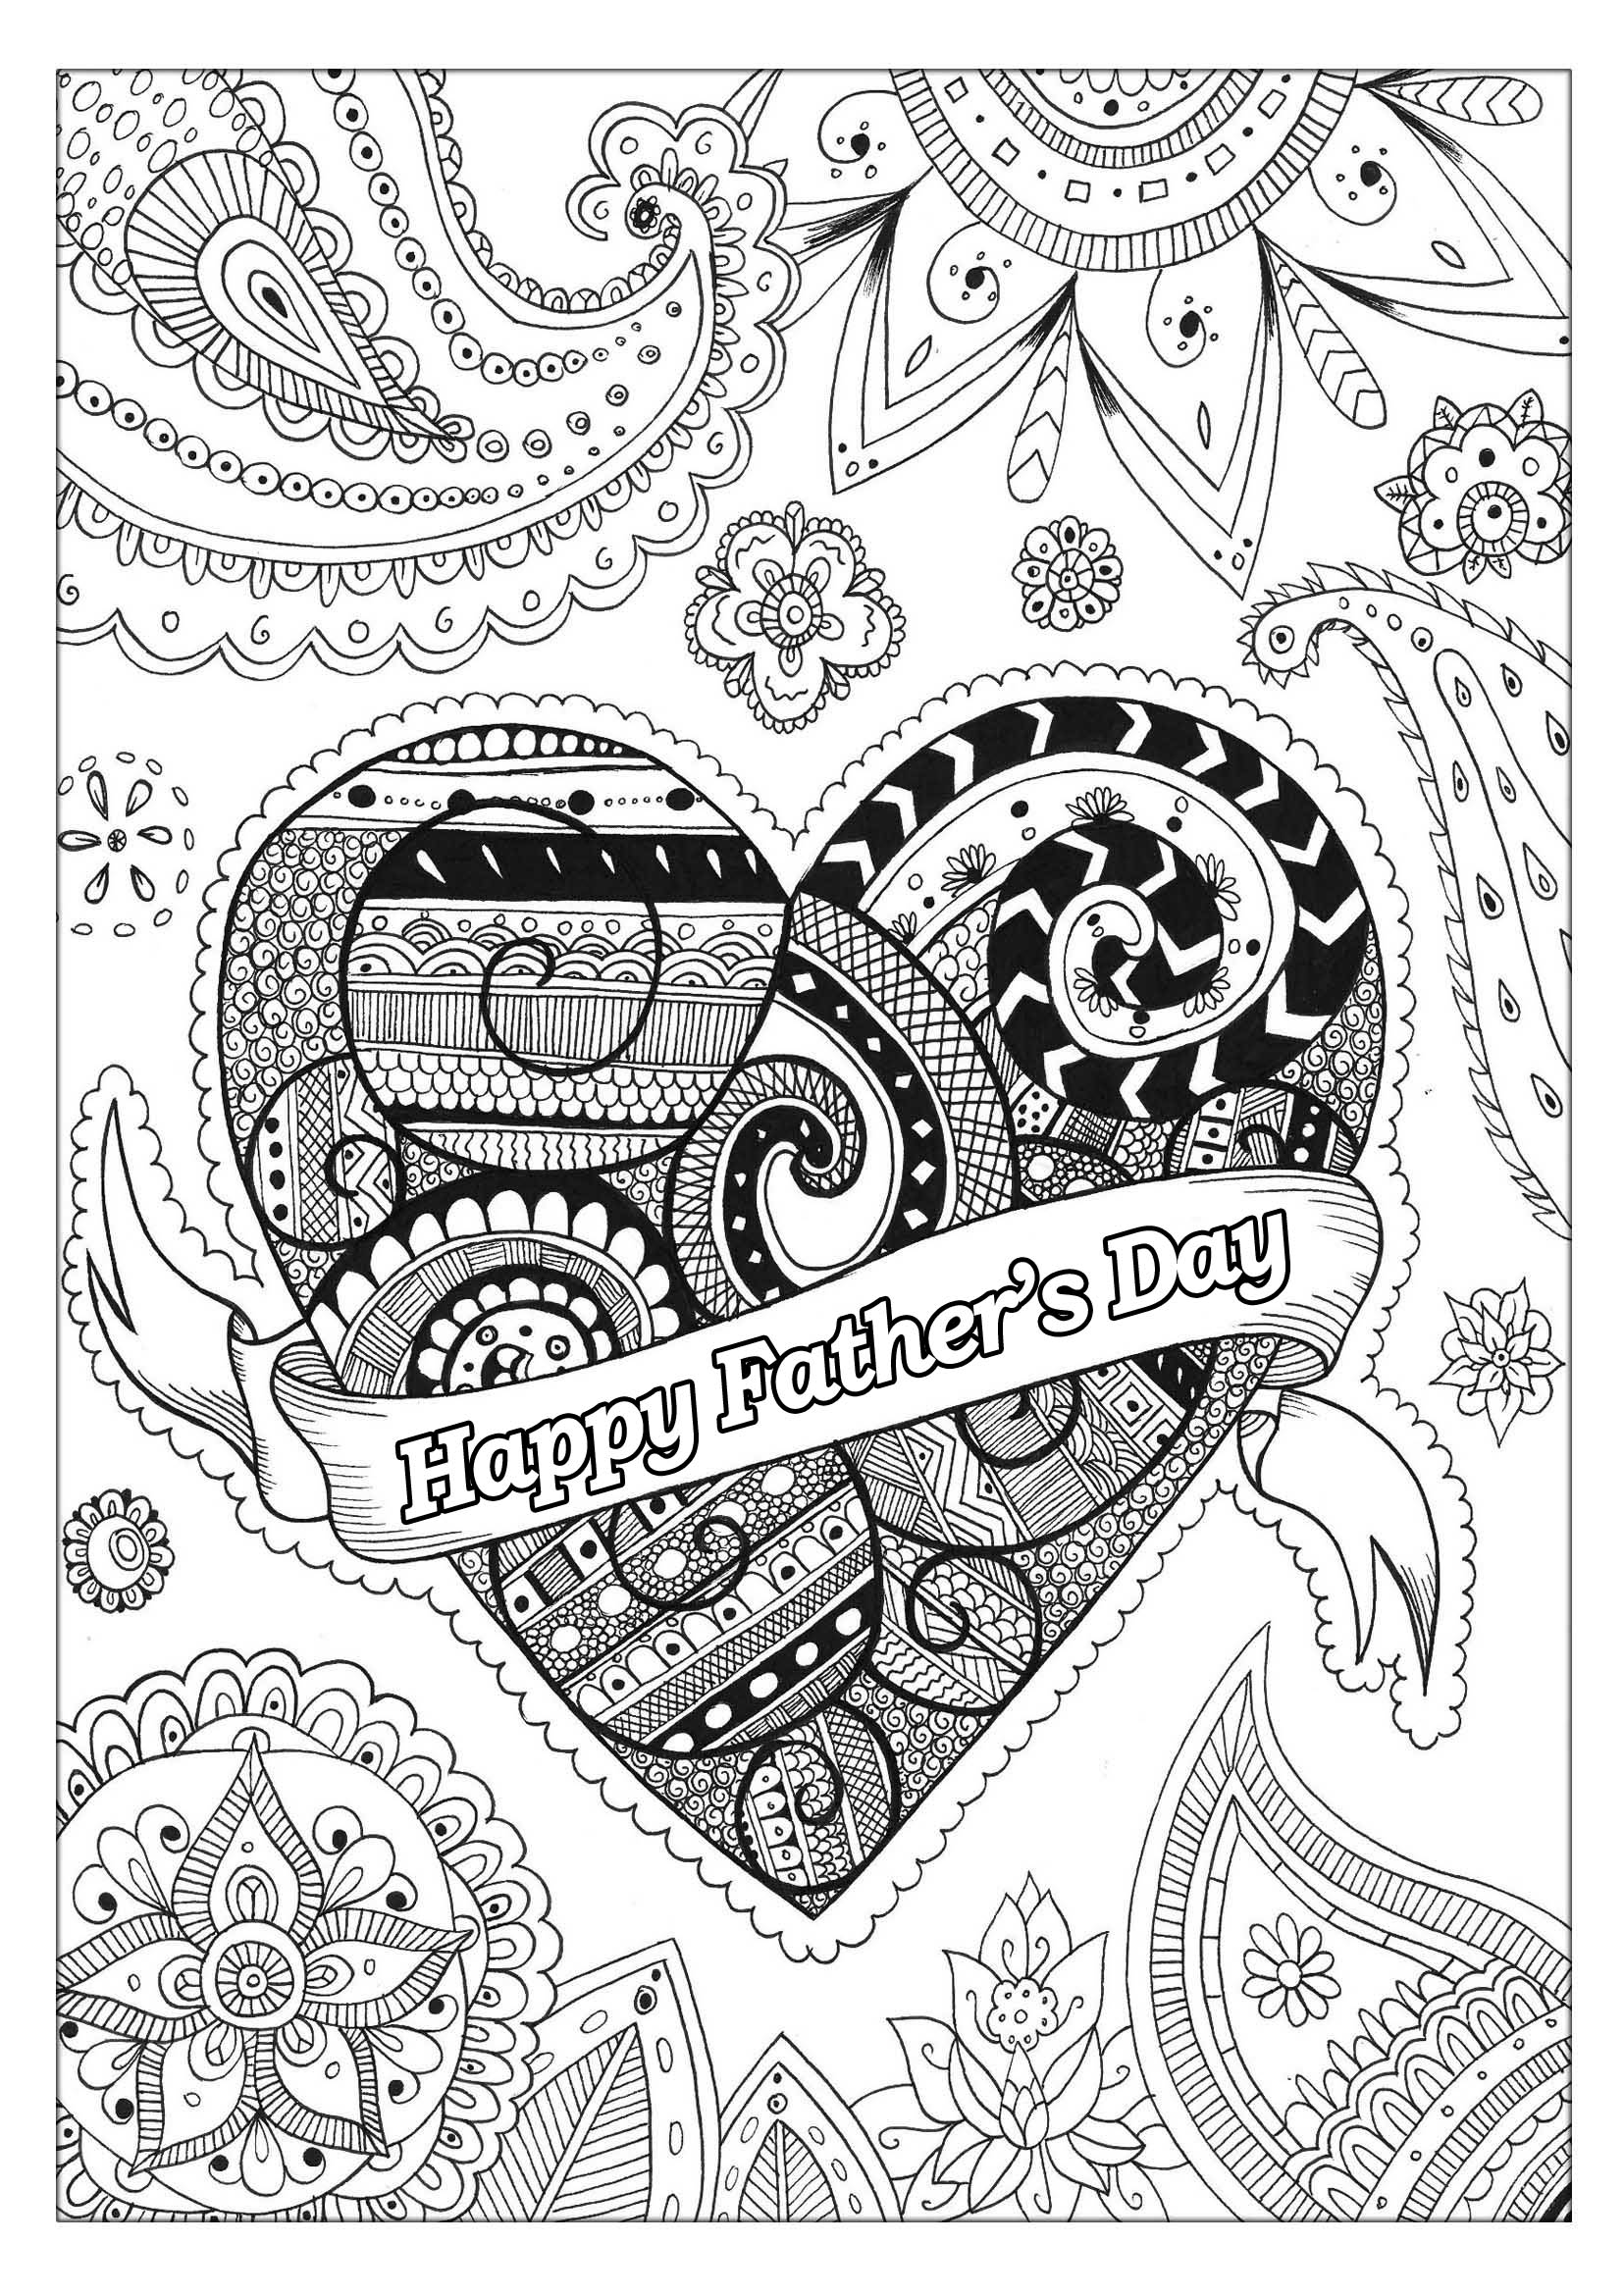 Coupcakes | Cupcake coloring pages, Free coloring pages, Coloring ... | 2340x1655